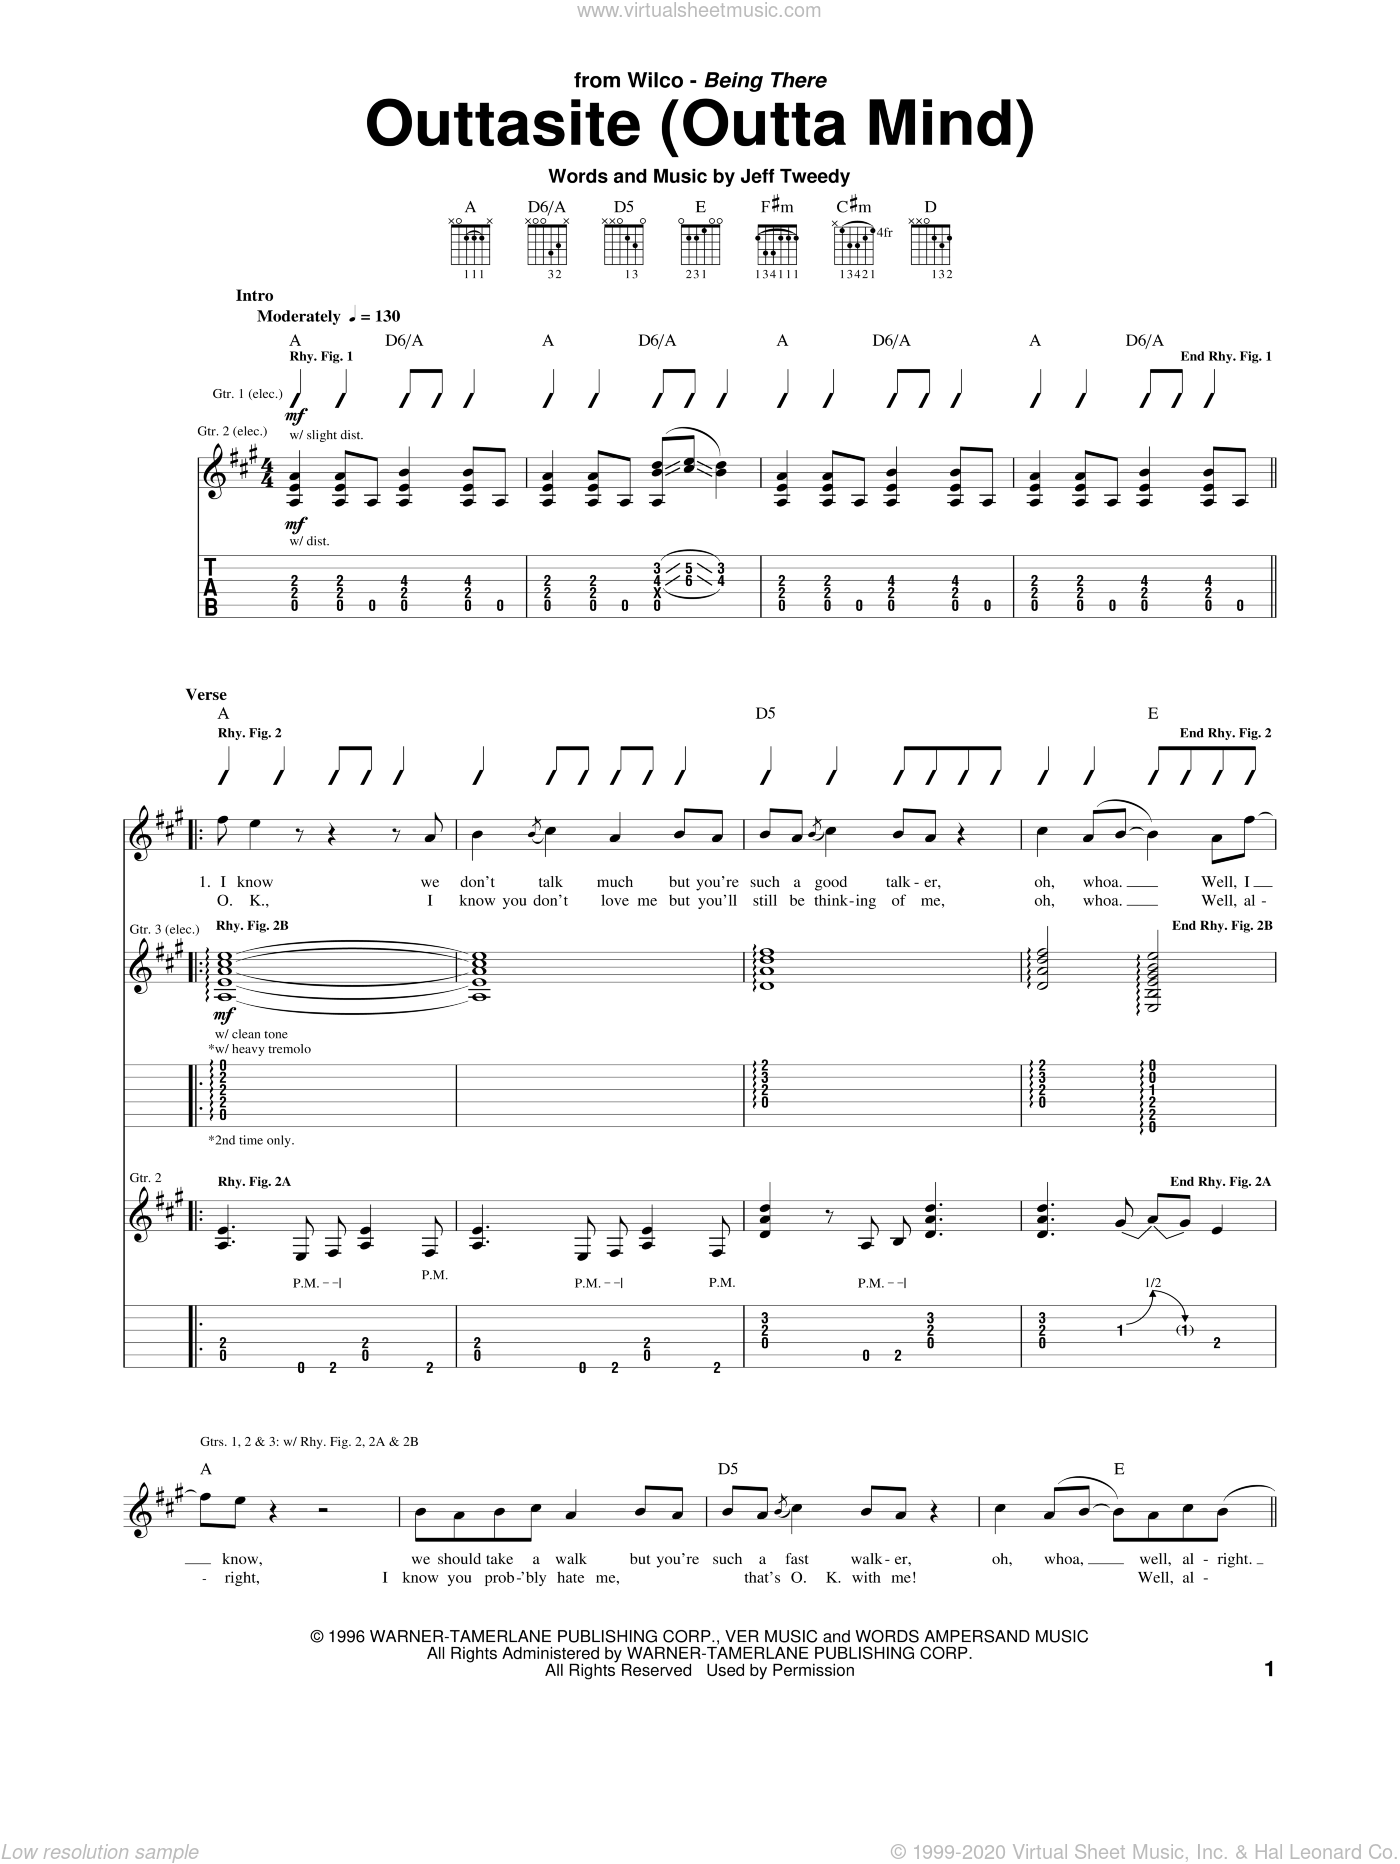 Outtasite (Outta Mind) sheet music for guitar (tablature) by Wilco. Score Image Preview.